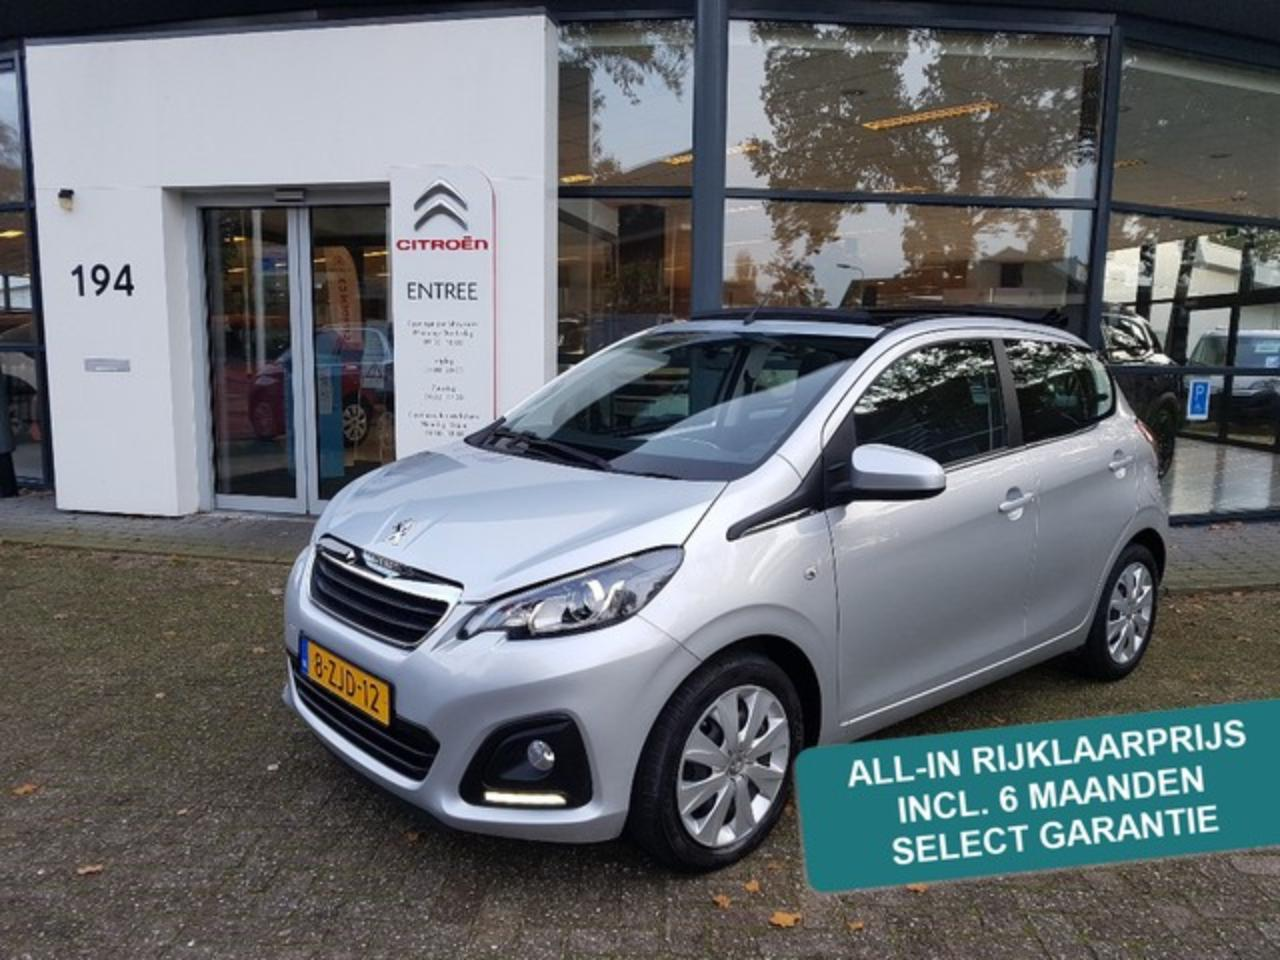 Peugeot 108 VTI 68 PK Active Top Cabrio | elektr. canvas dak |